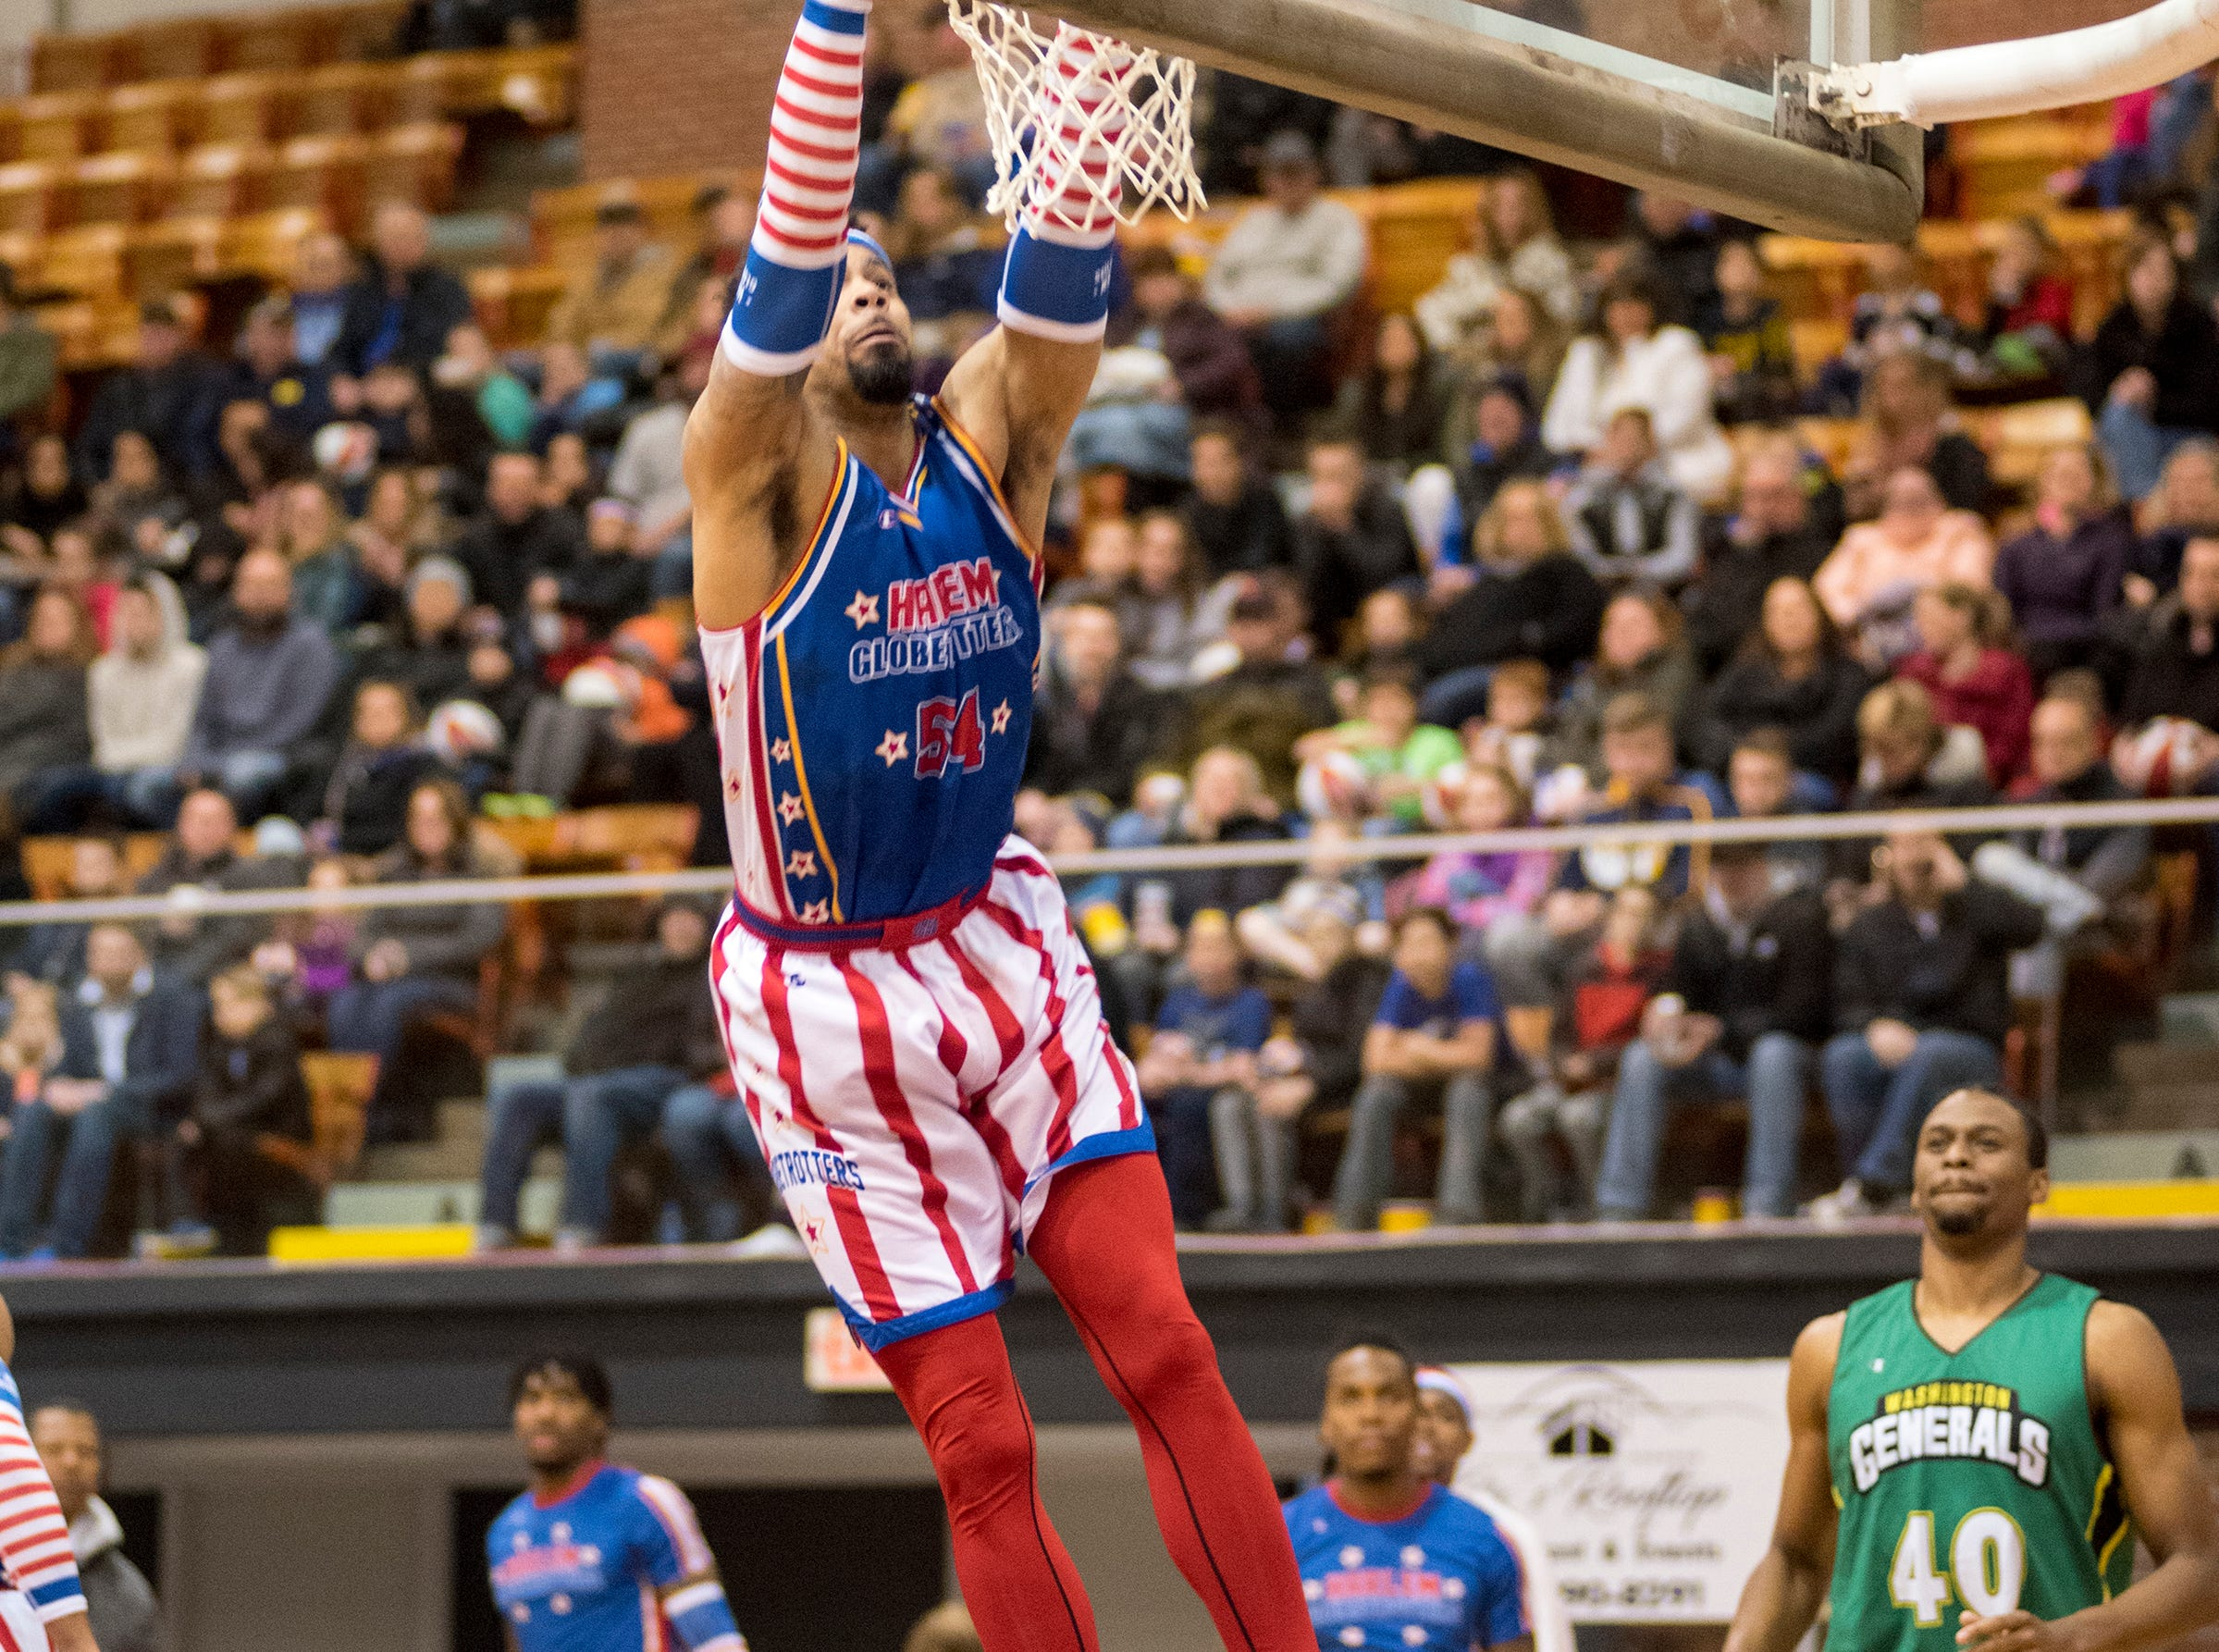 Harlem Globetrotters forward Hi-Rise goes for a dunk while competing against the Washington Generals Saturday, Feb. 2, 2019 at McMorran Arena.